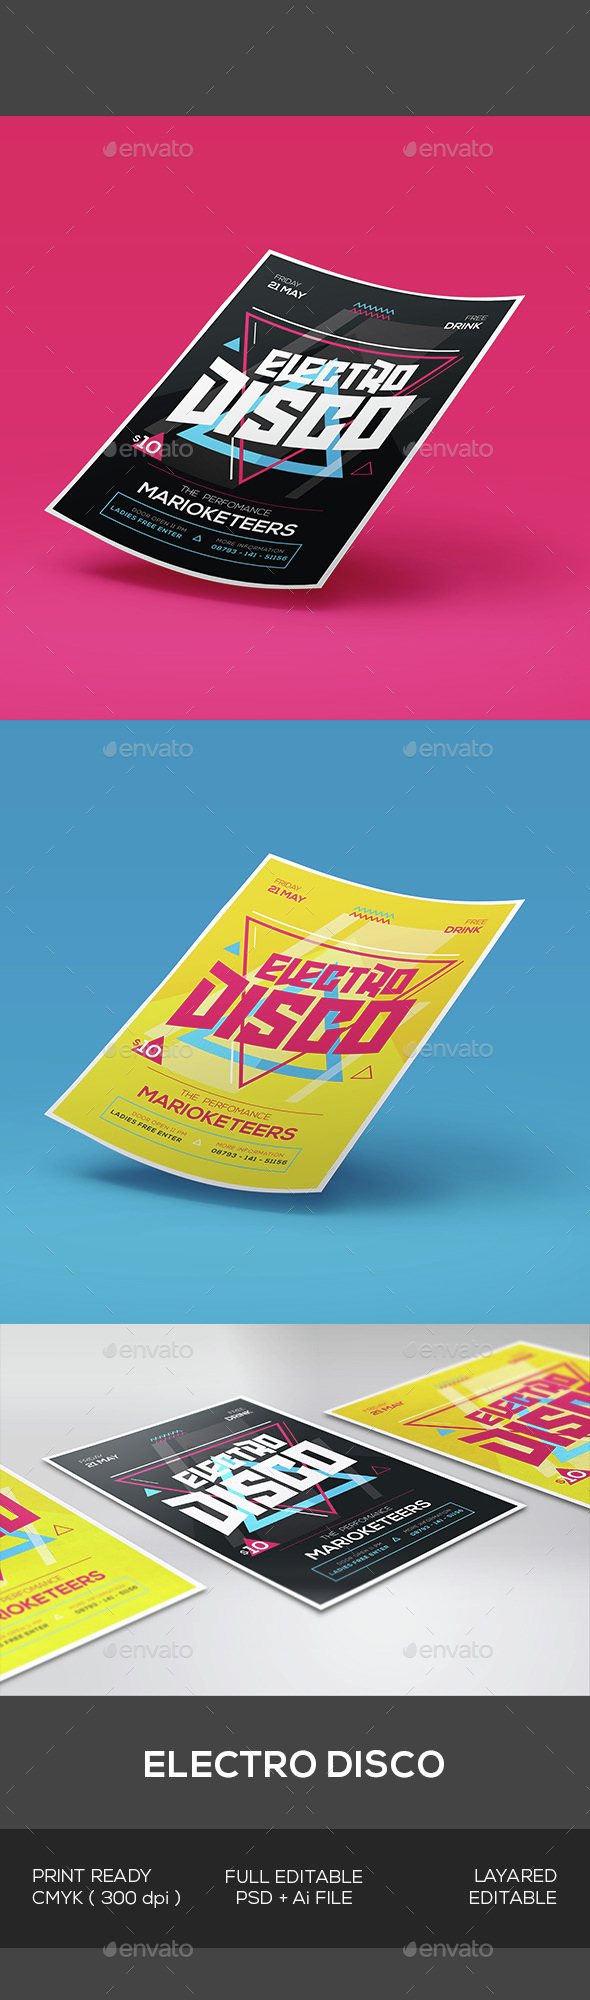 Electro Disco Flyer - Events Flyers